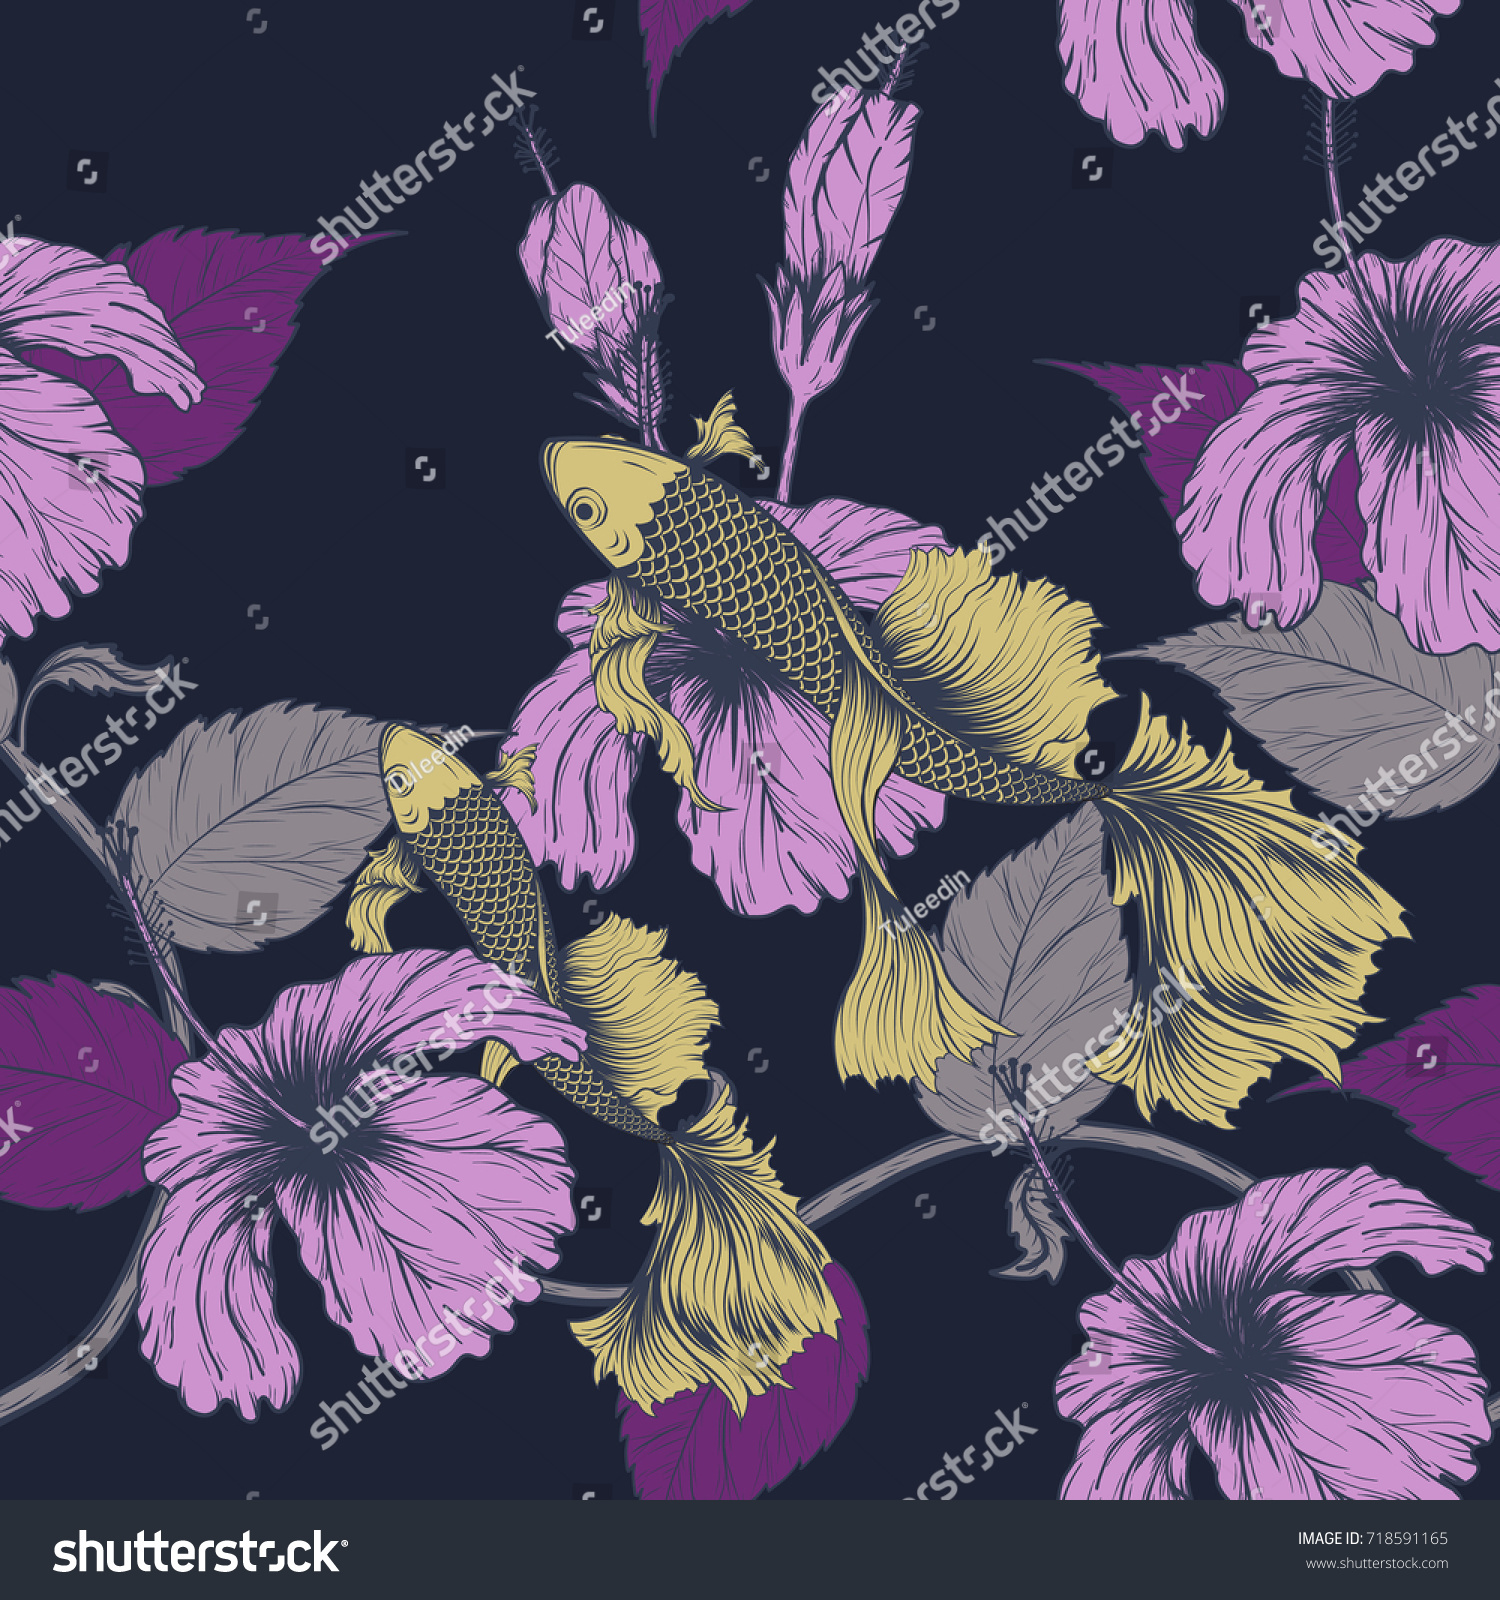 Koi Fish Hibiscus Flower Pattern By Stock Vector Royalty Free